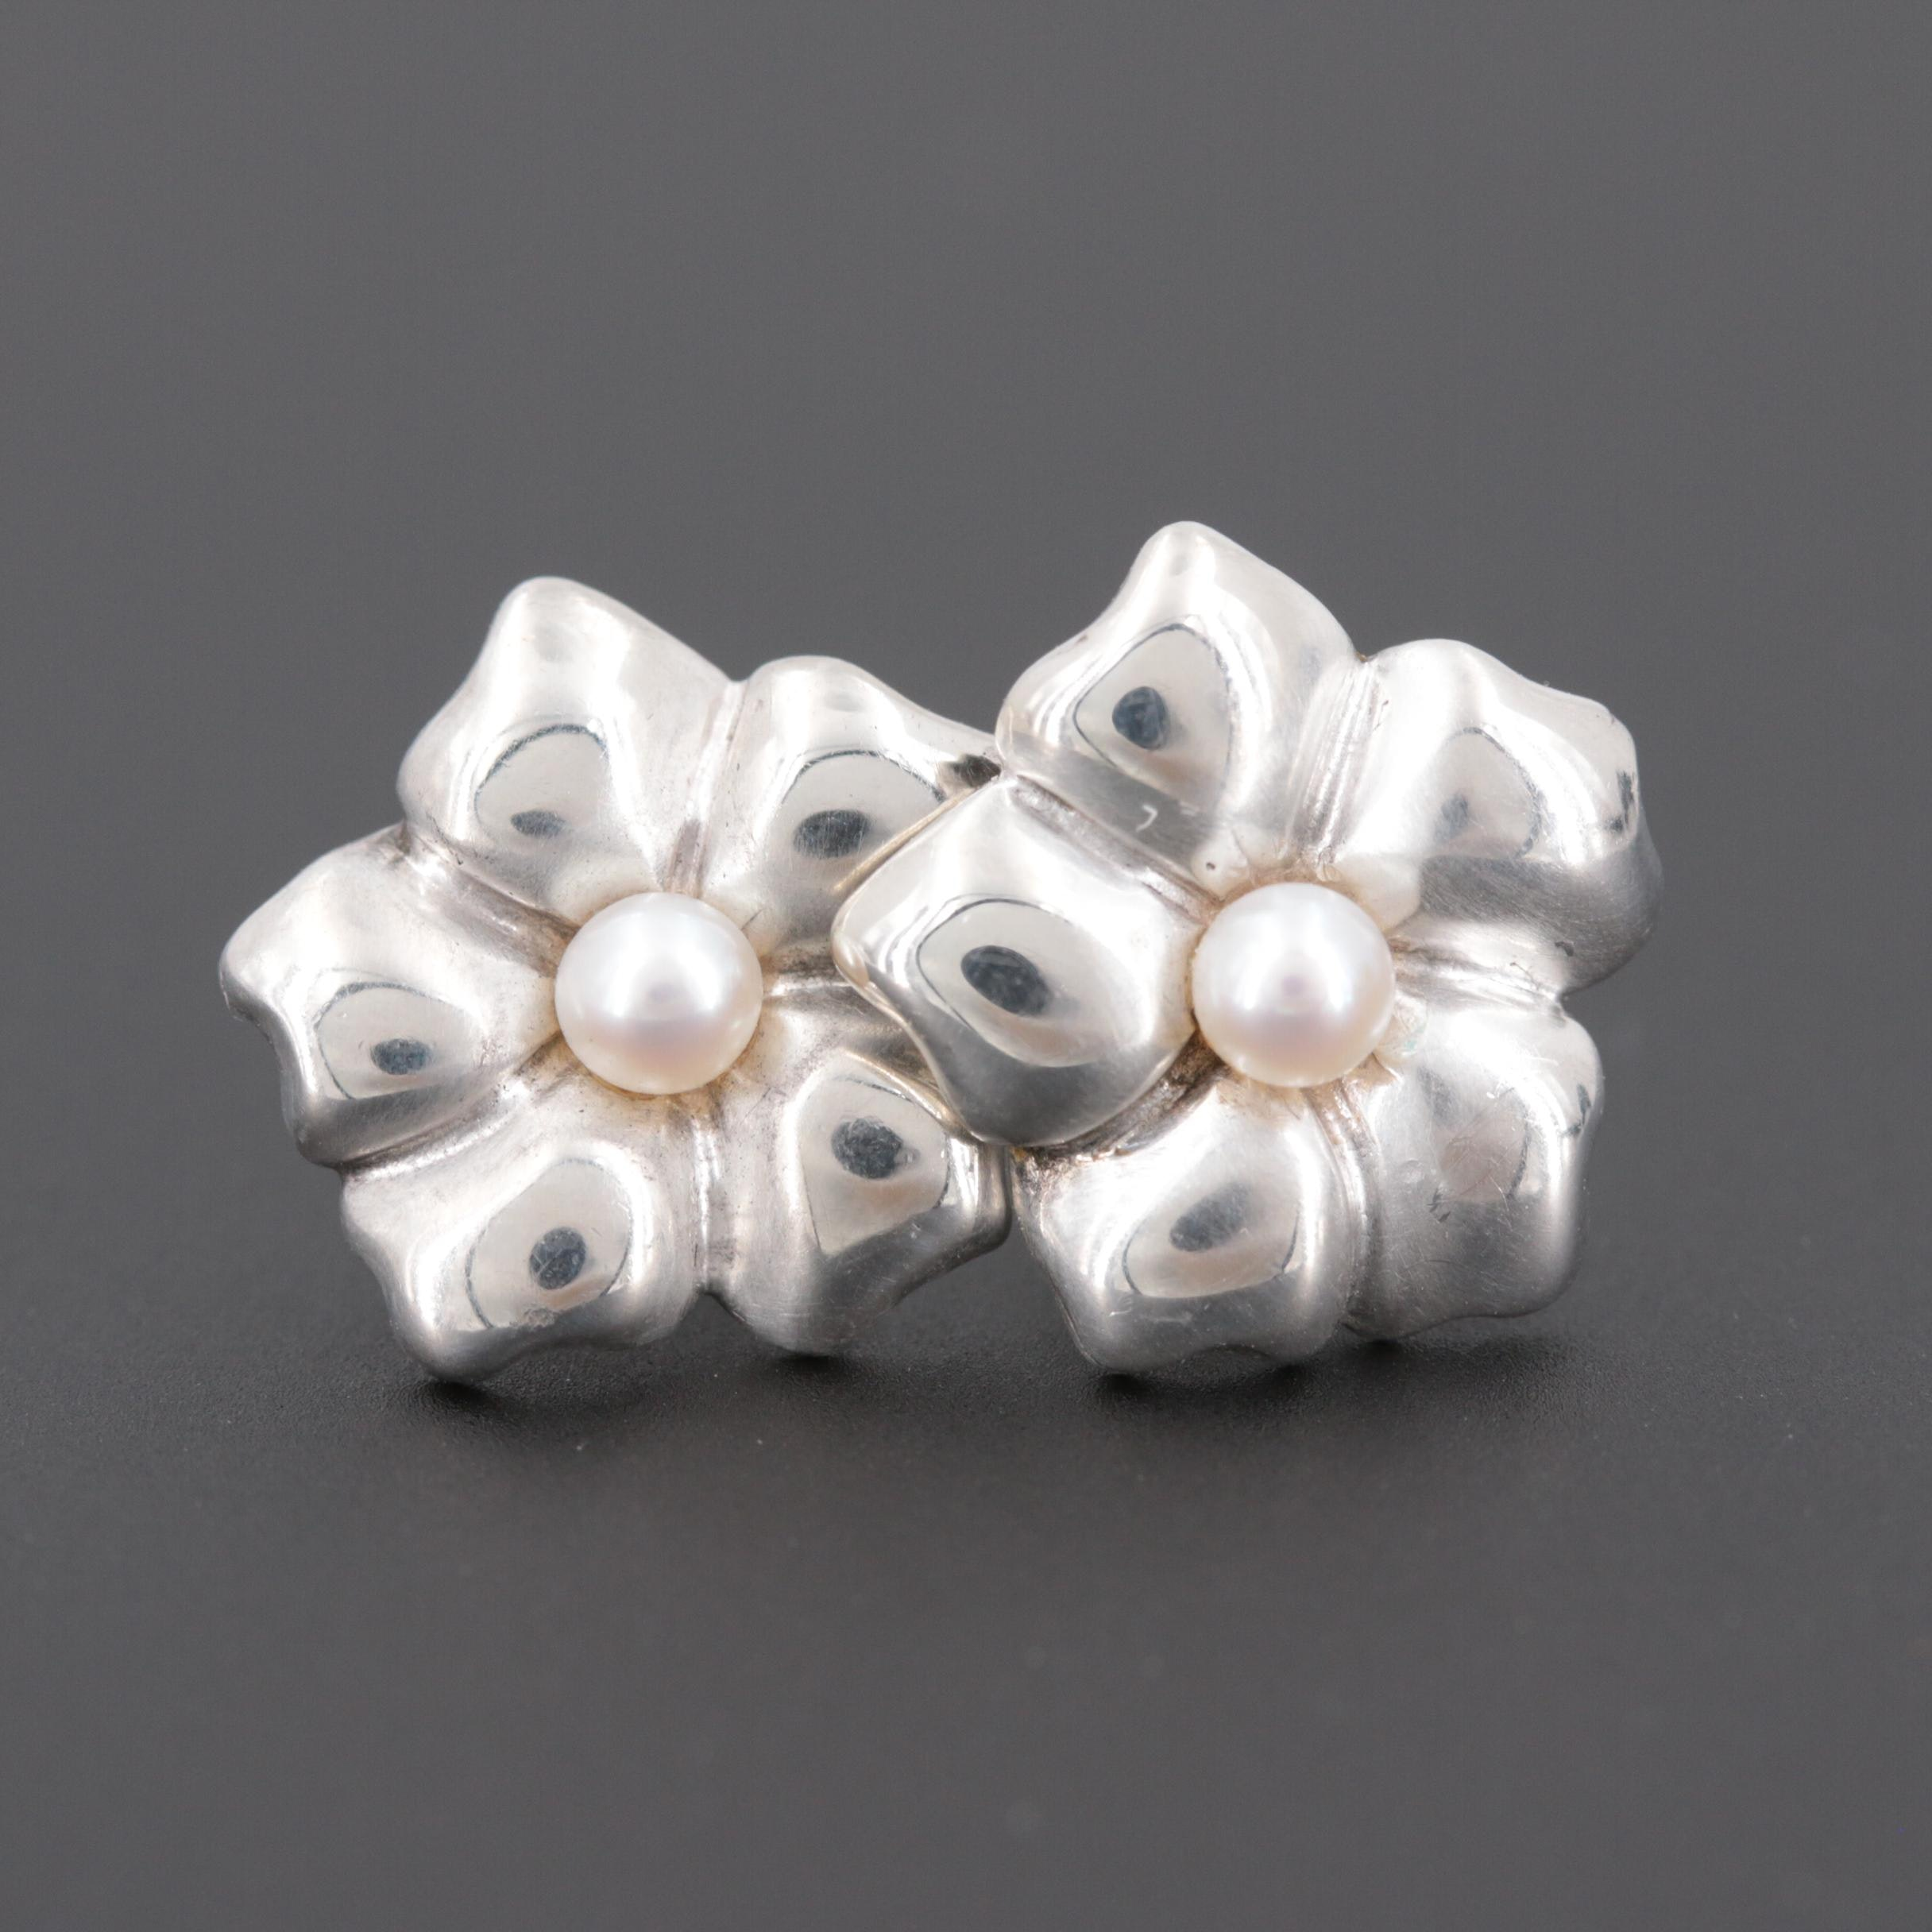 Vintage Tiffany & Co. Sterling Silver Cultured Pearl Floral Earrings